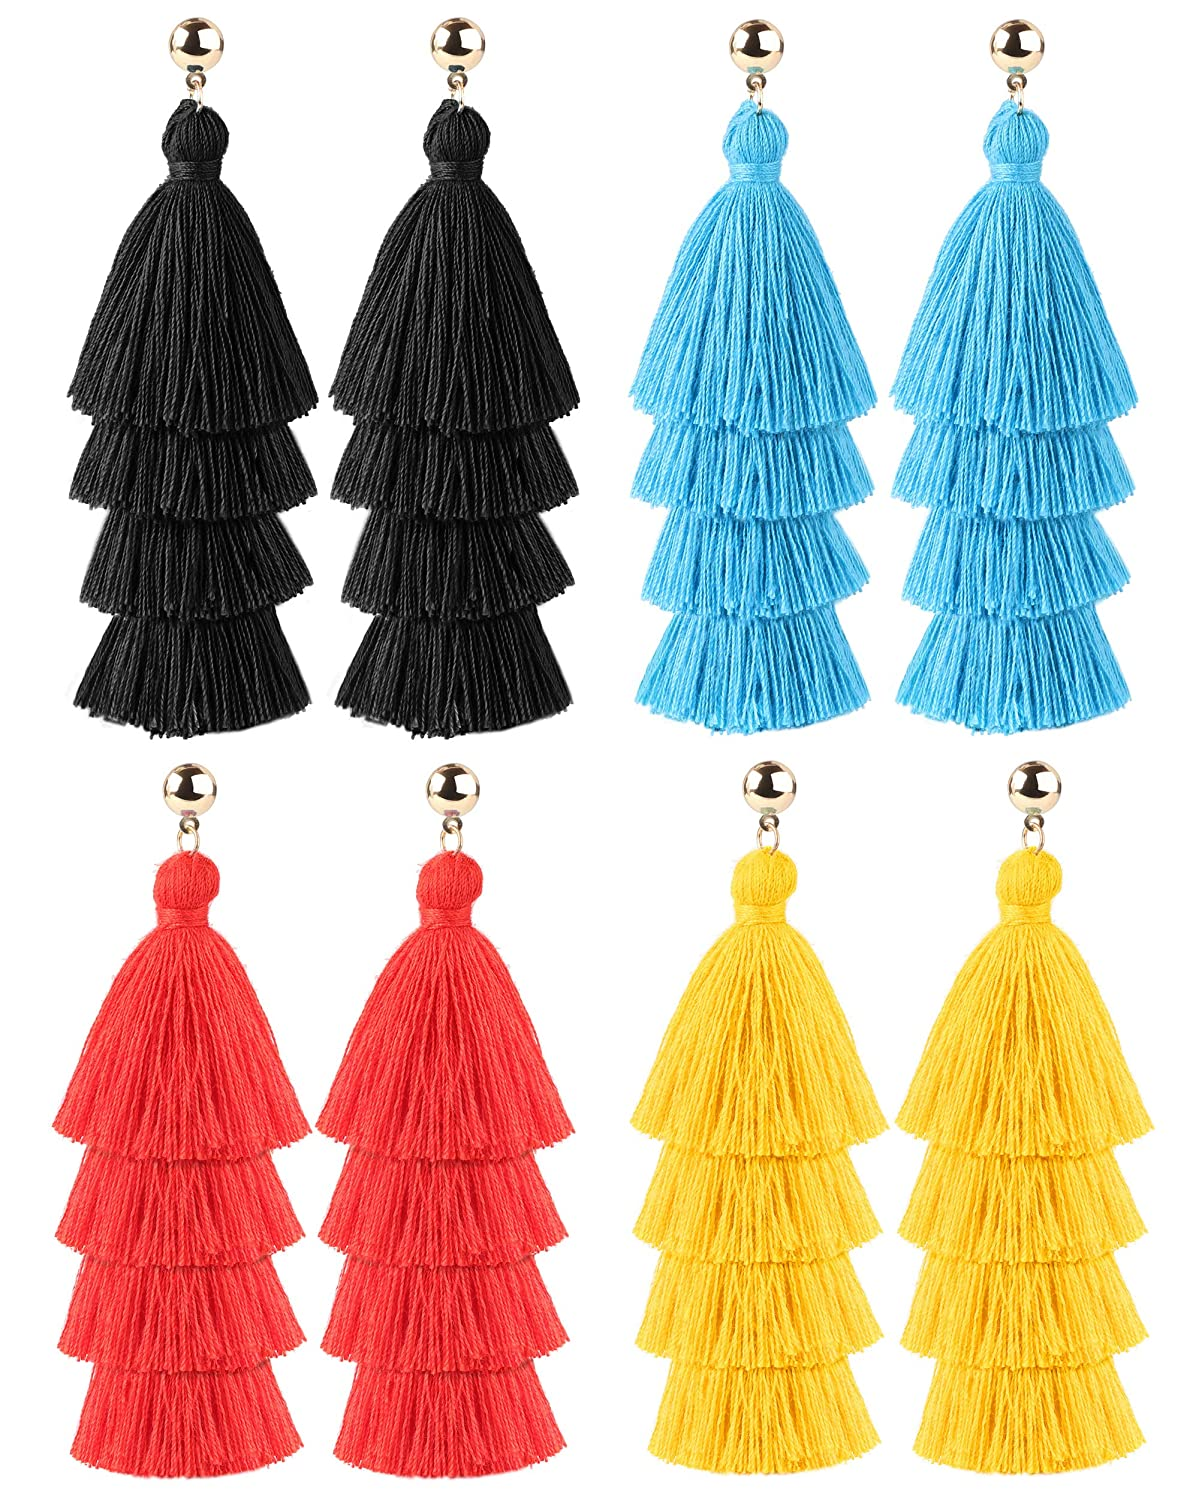 LOYALLOOK 4-6Pairs Tassel Earrings For Women Tassel Earrings Long Thread Tassel Earrings Bohemian Fringe Drop Handmade Earrings LK-M-E0012-4